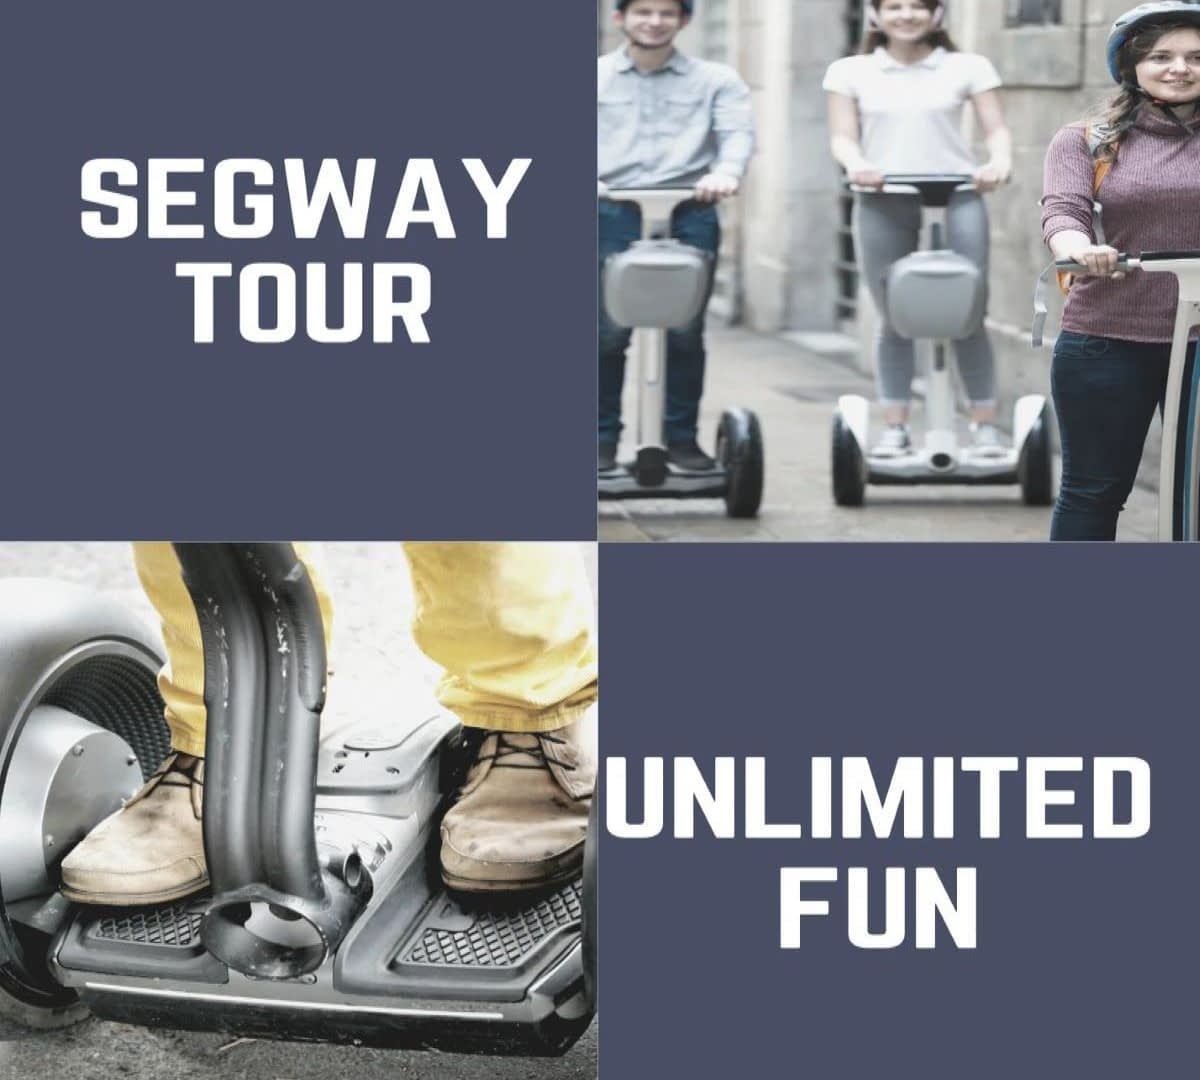 what is Segway tours